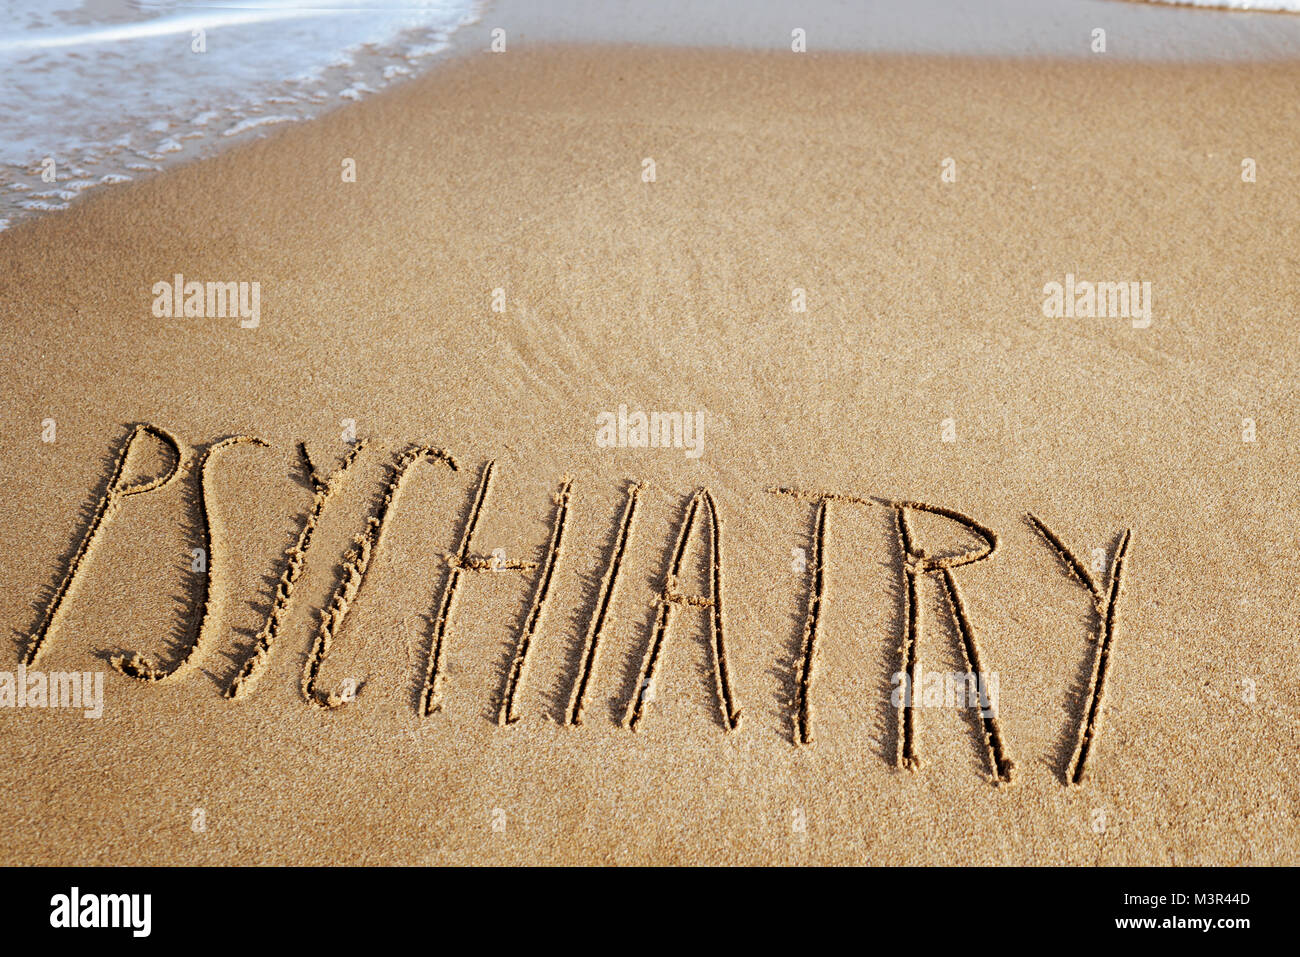 the word psychiatry written in the sand of a beach, with sea foam on the left and some blank space on top - Stock Image